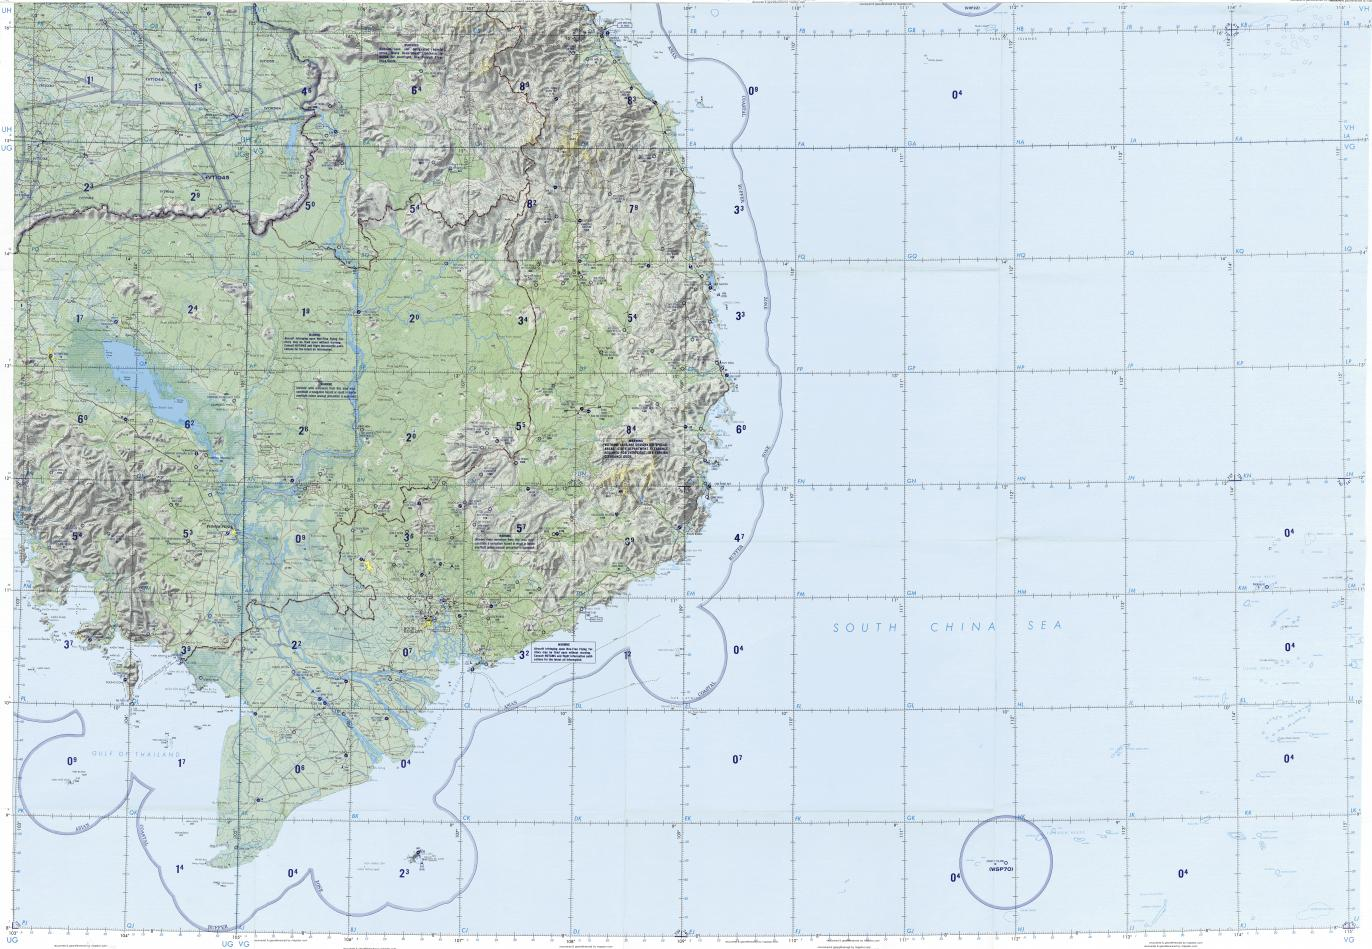 Download topographic map in area of Ho Chi Minh City Nha Trang Can